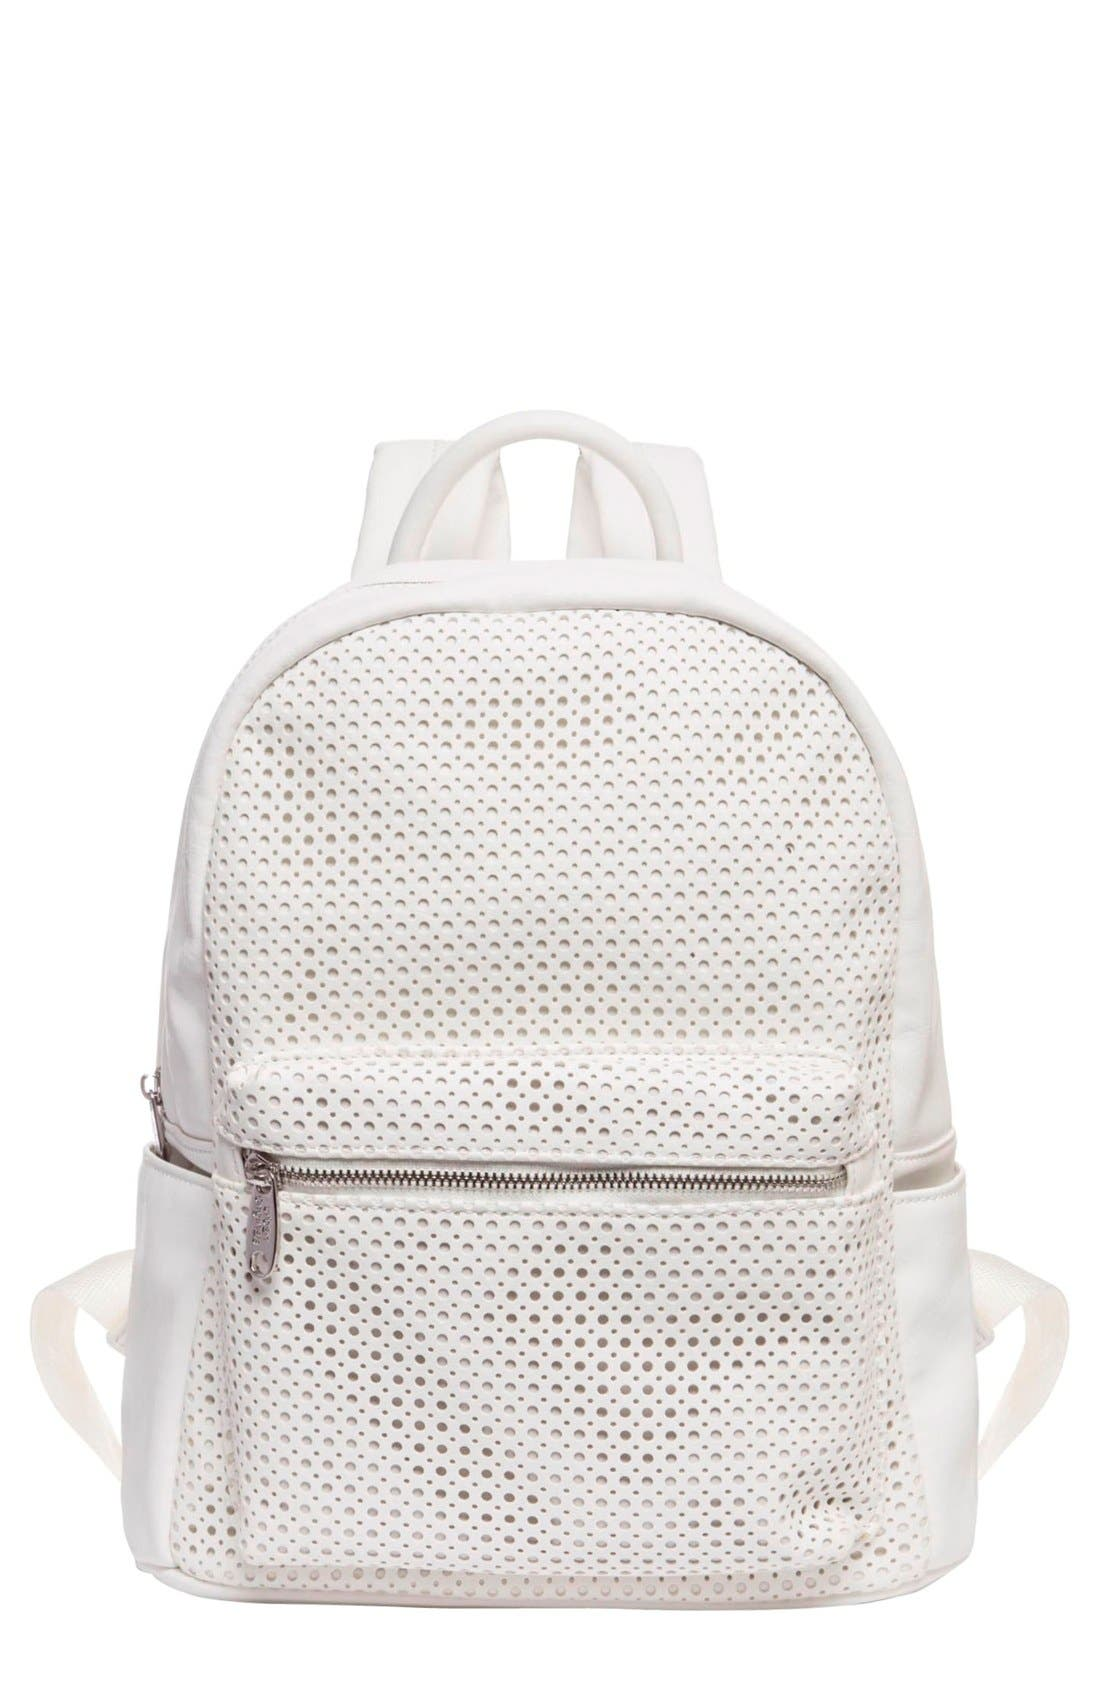 Lola Perforated Vegan Leather Backpack,                             Main thumbnail 1, color,                             100